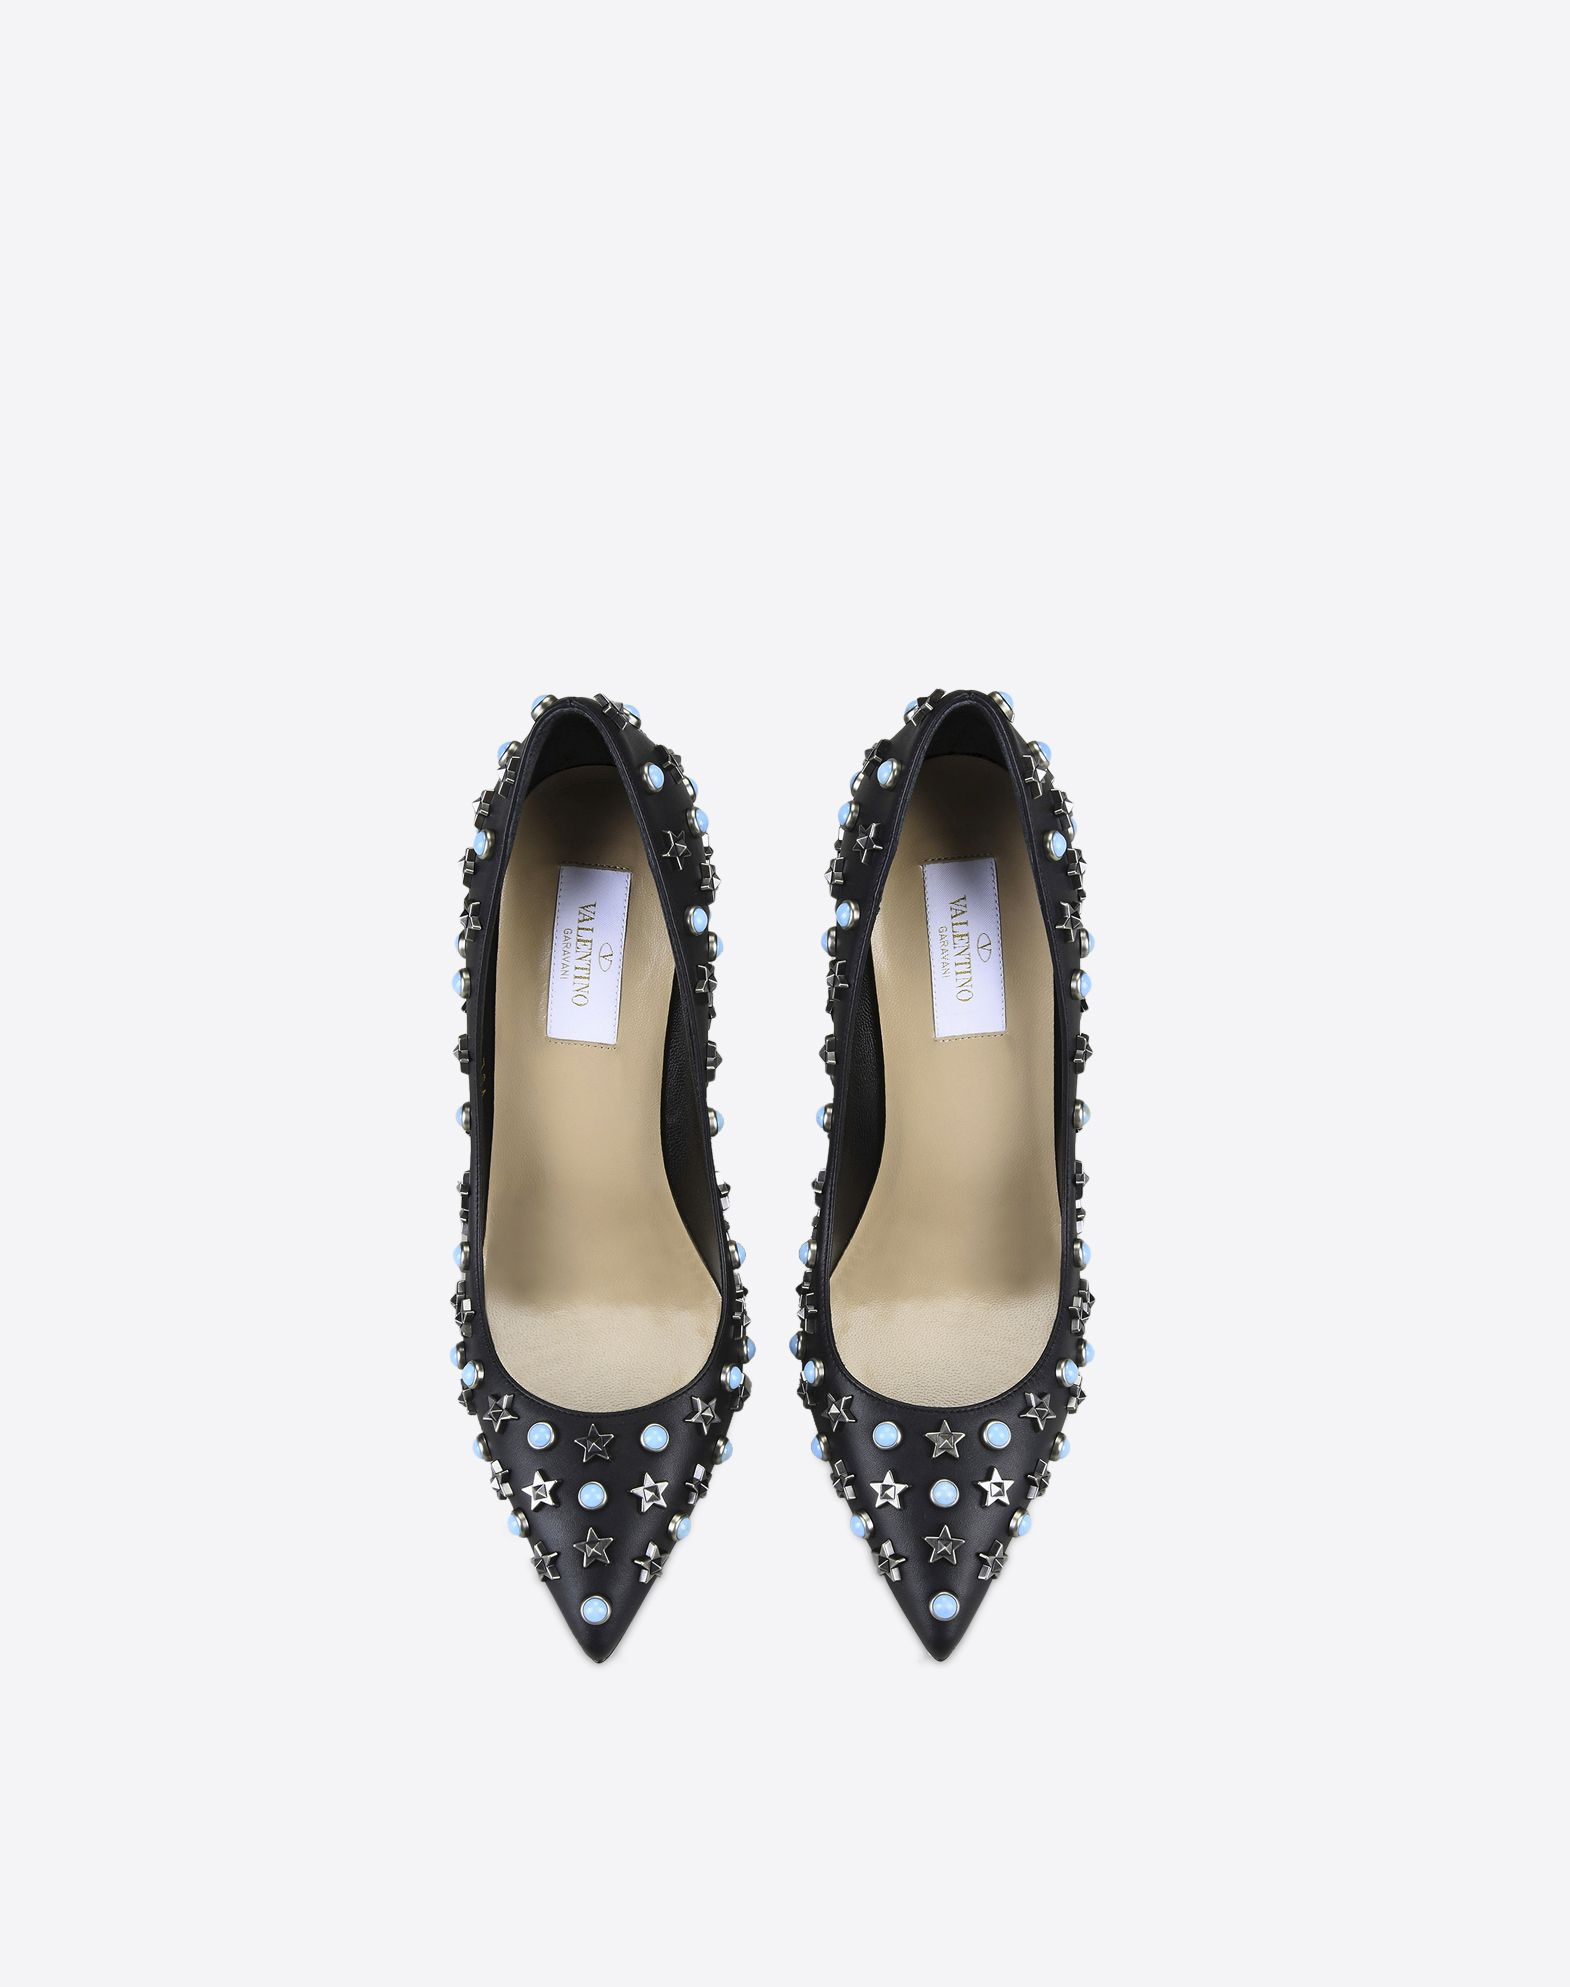 VALENTINO Metal Applications Solid color Leather sole Narrow toeline Spike heel  11037379gd